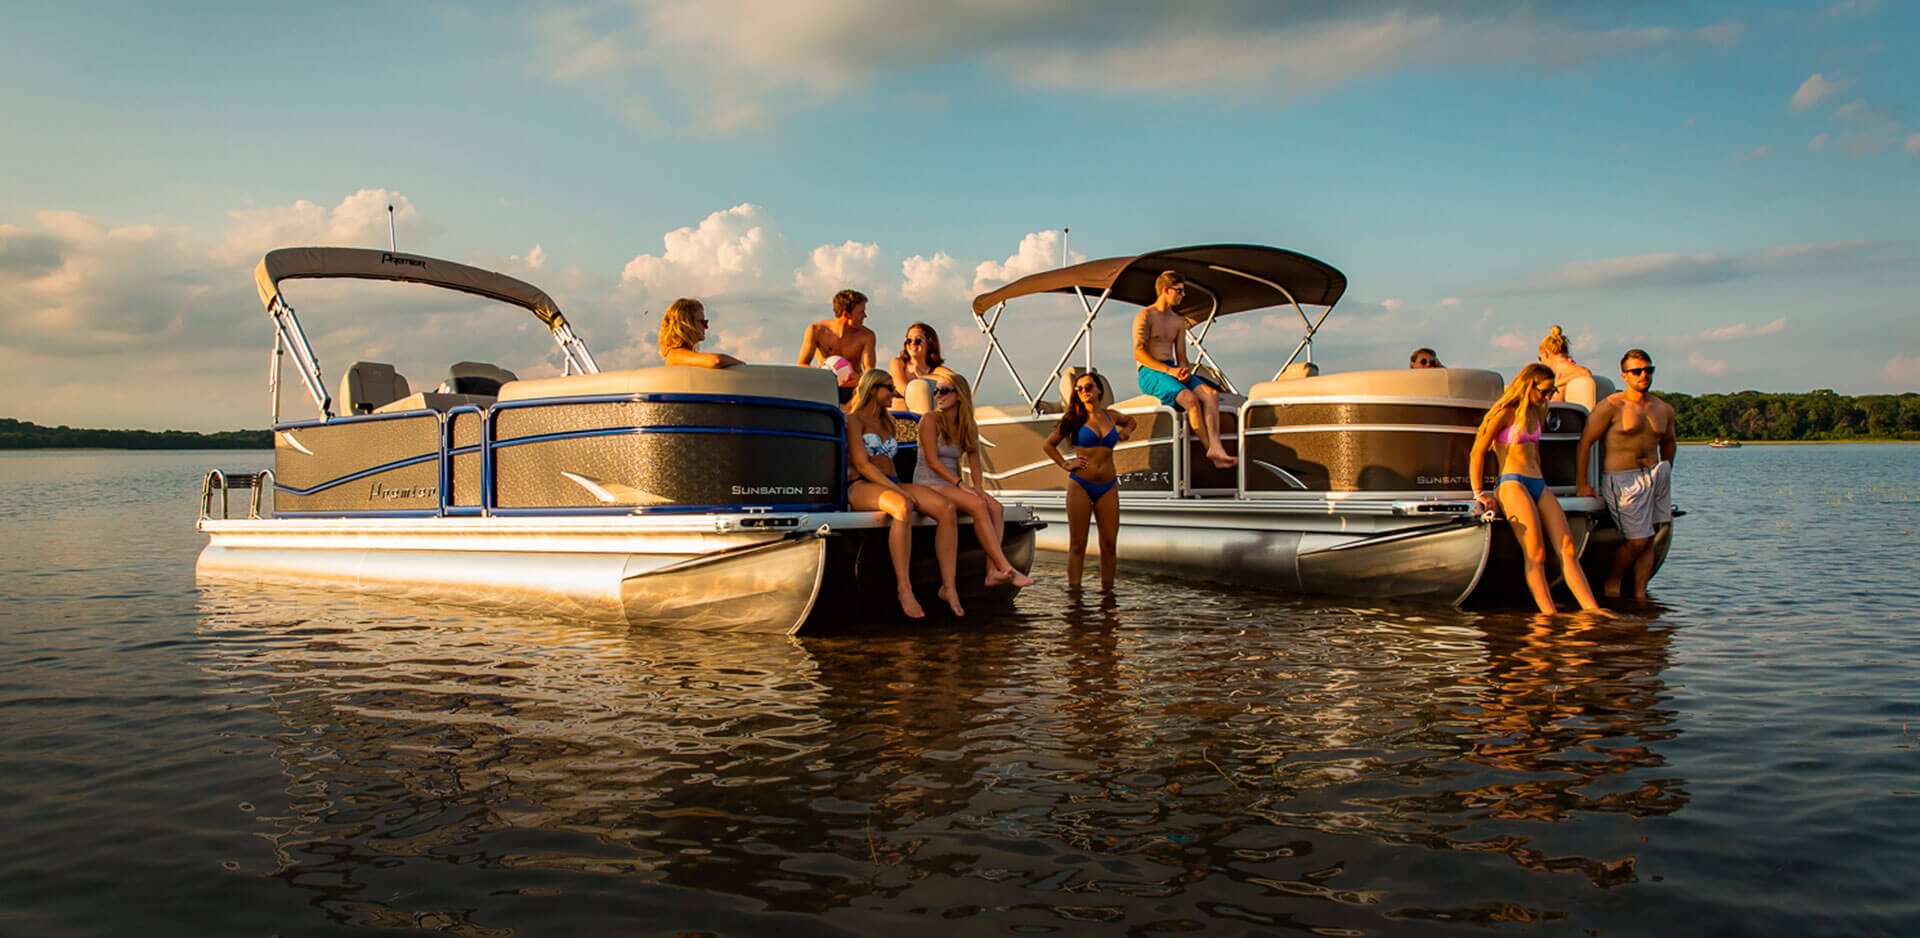 Home All About Boats Showroom Osage Beach Mo 573 302 4100